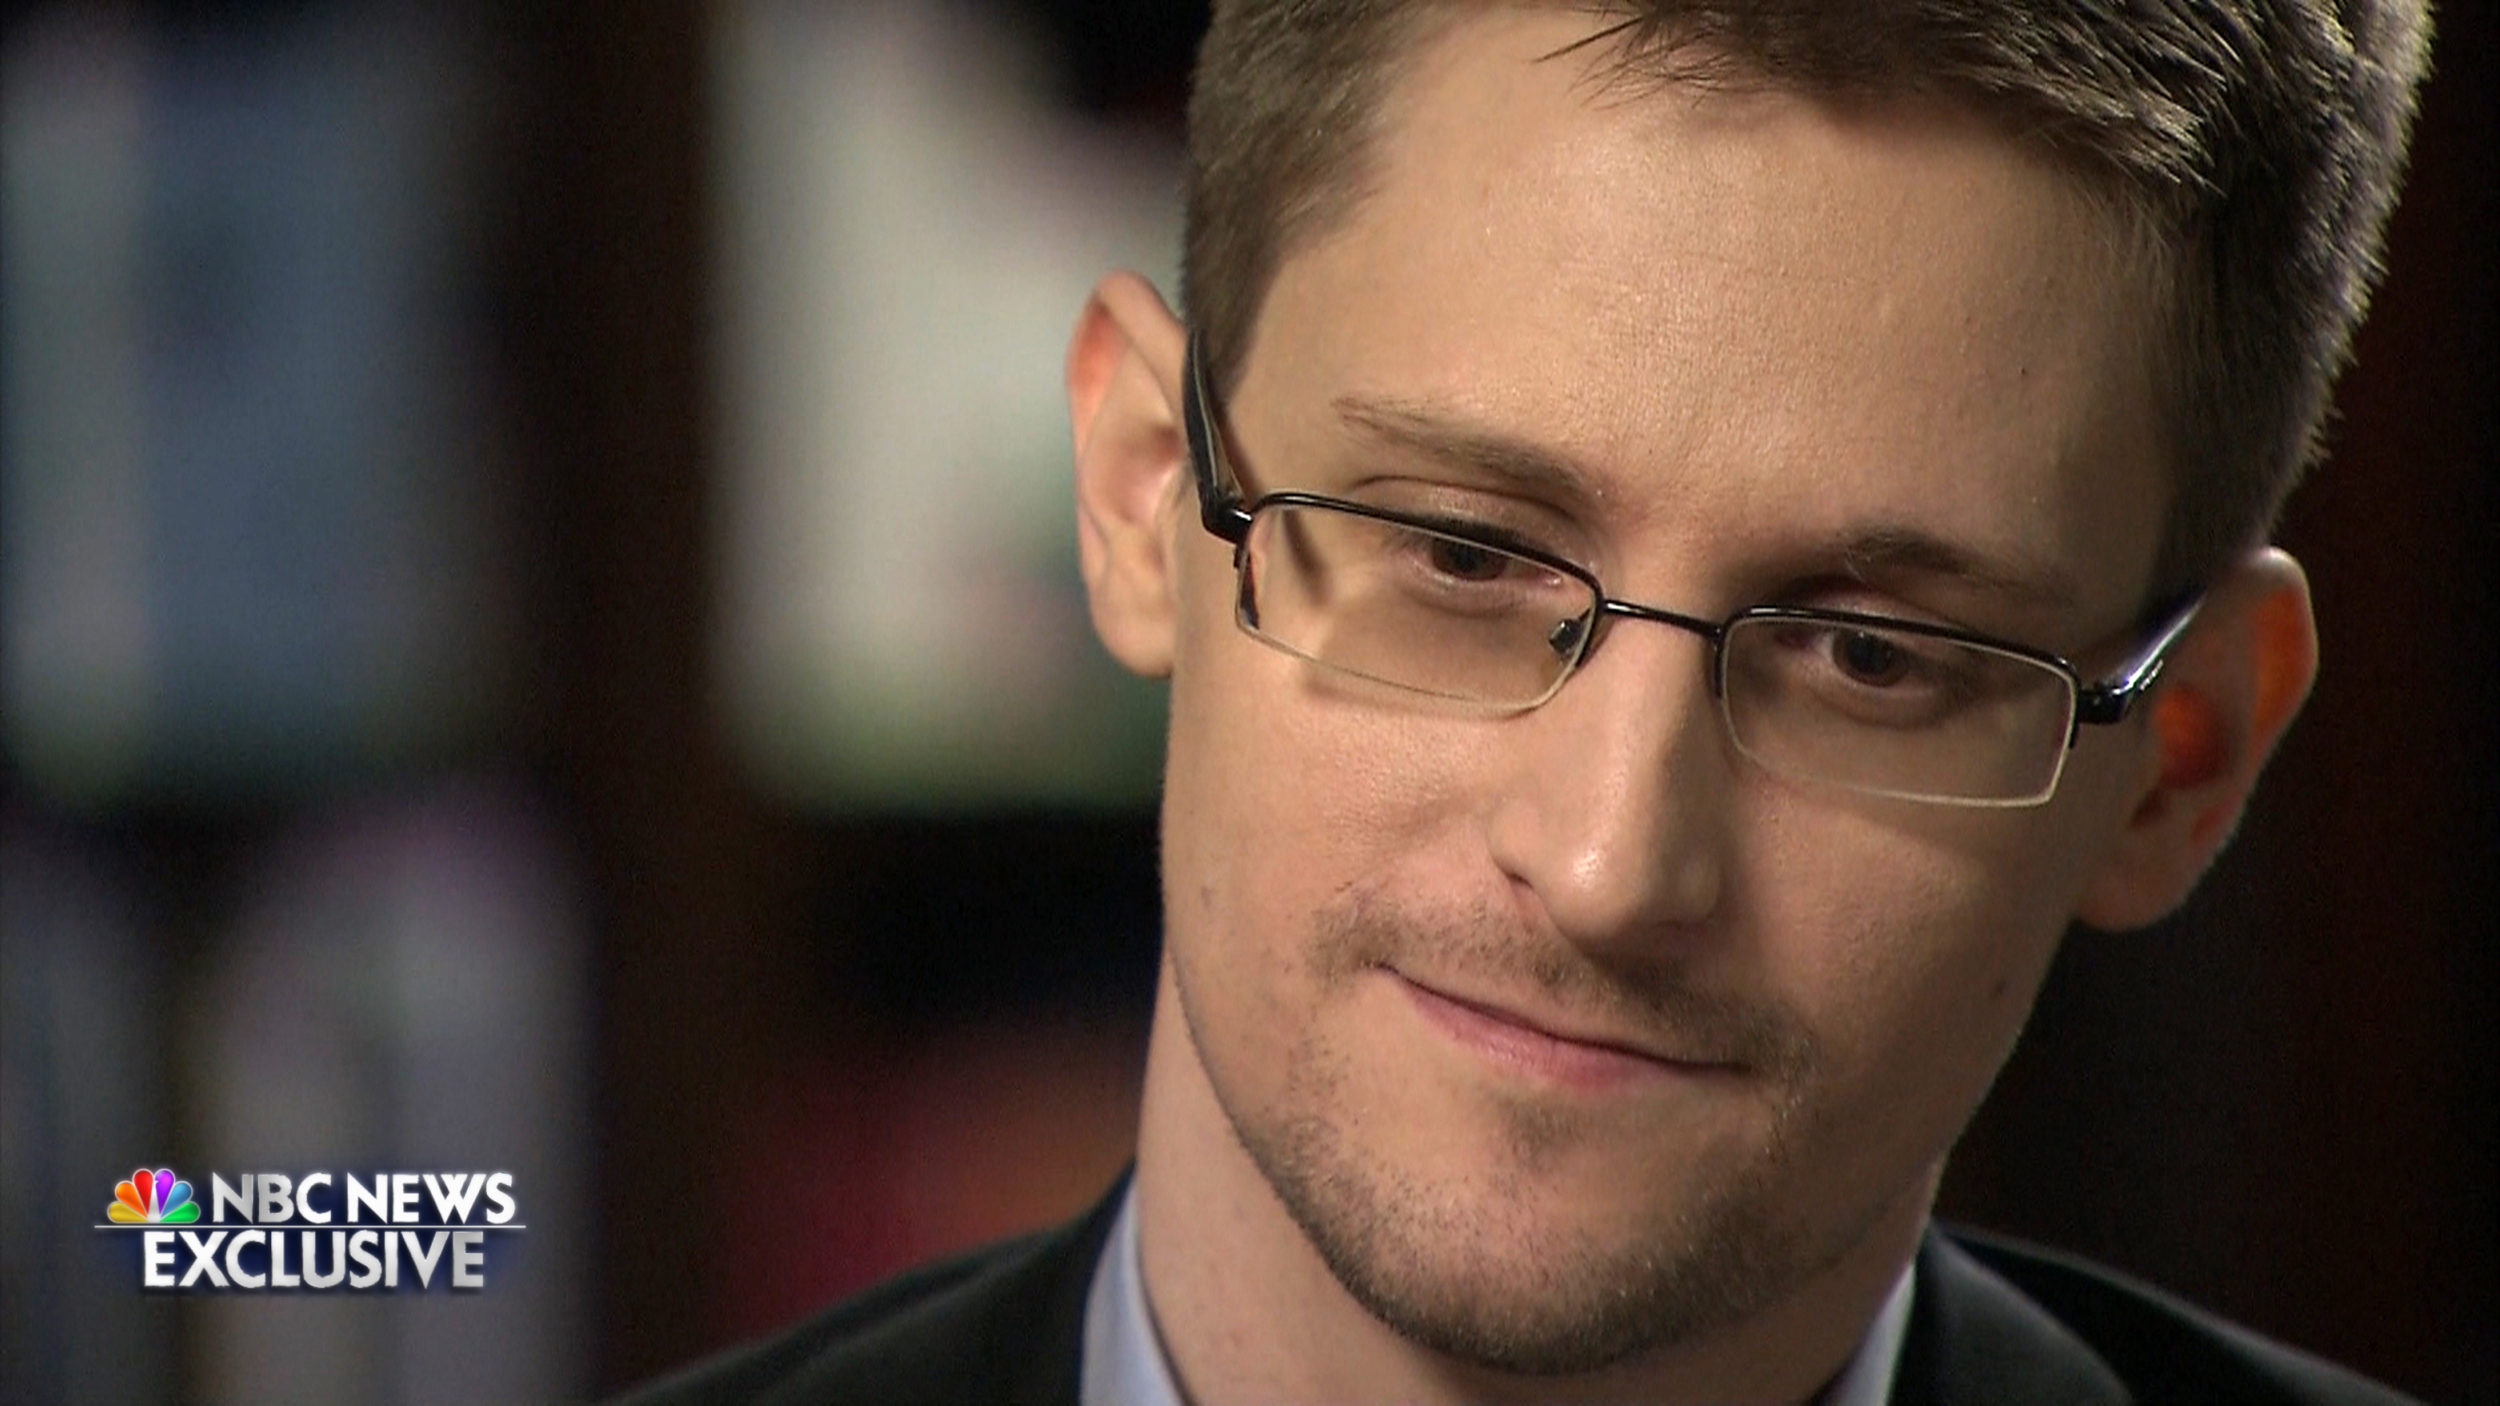 Inside the Mind of Edward Snowden, part 1